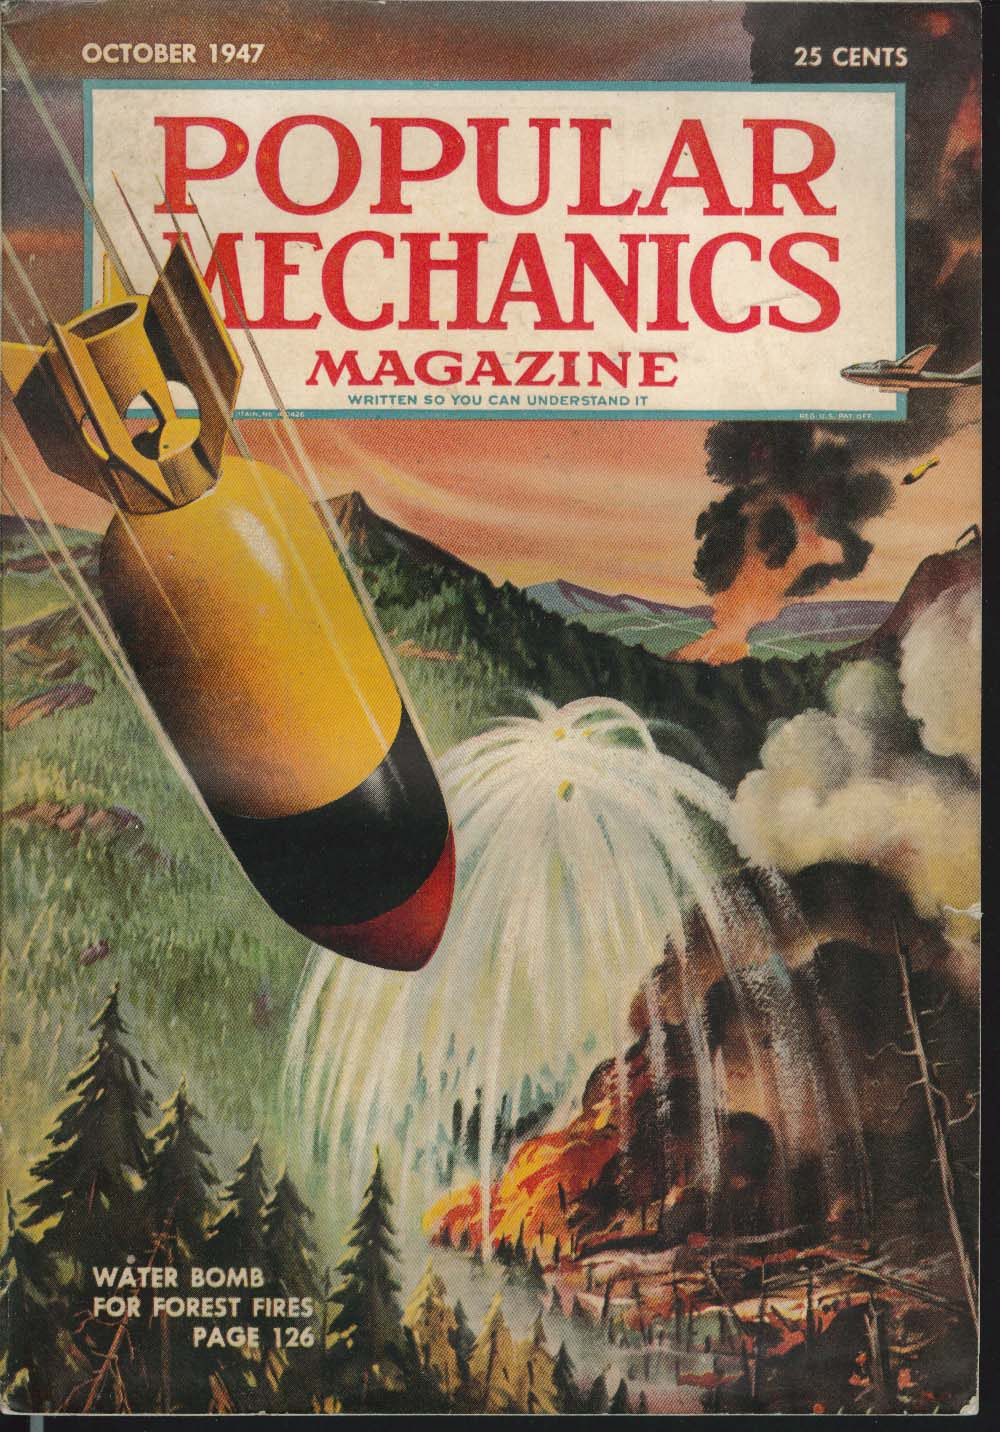 Image for POPULAR MECHANICS Water Bomb Forest Fires Bowler First Aid Motorcycles 10 1947